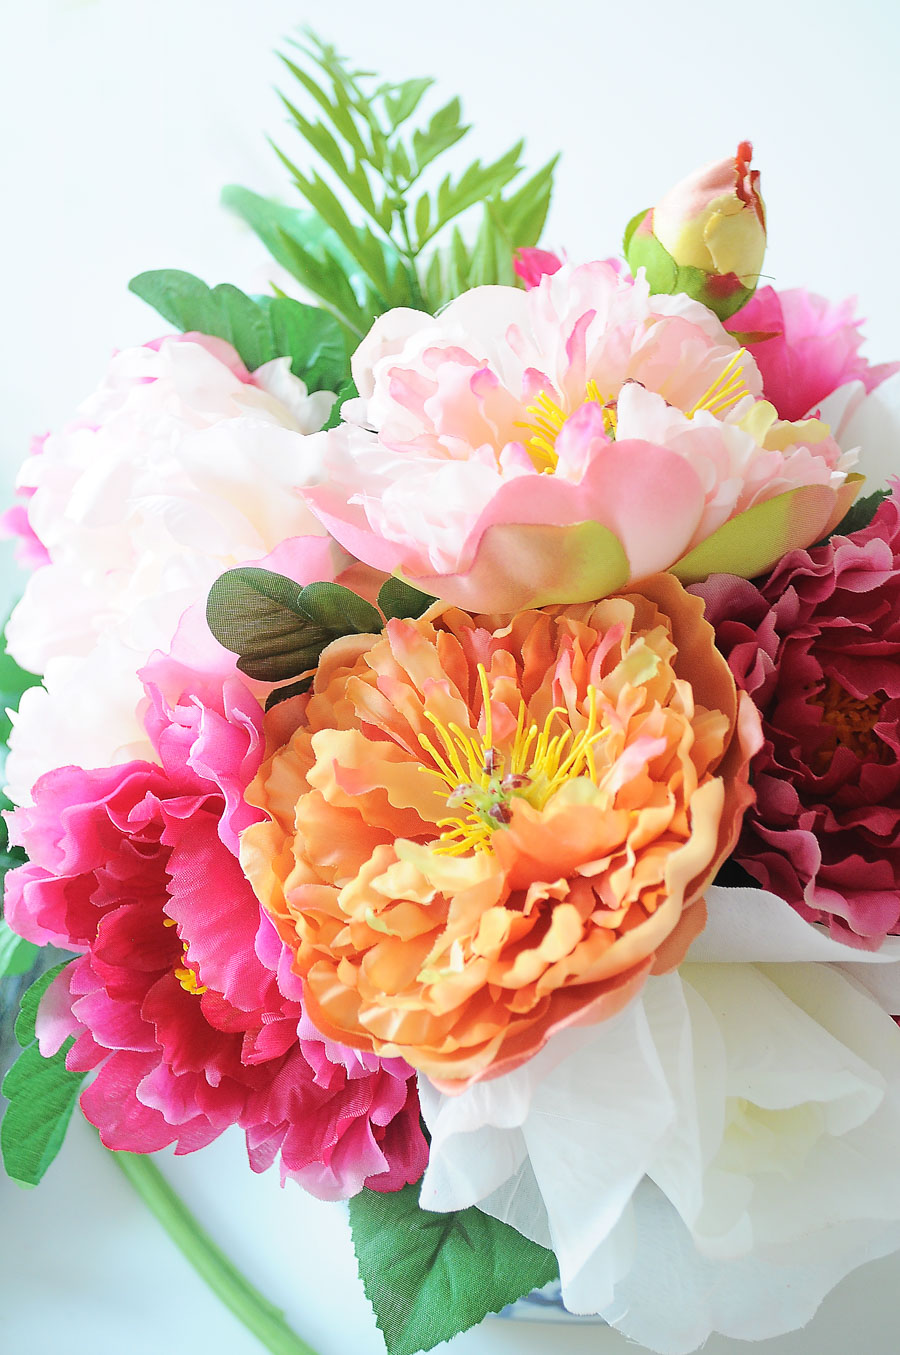 DIY tutorial for creating gorgeous floral arrangements for your home decor, tablescapes, centerpieces and soirees.